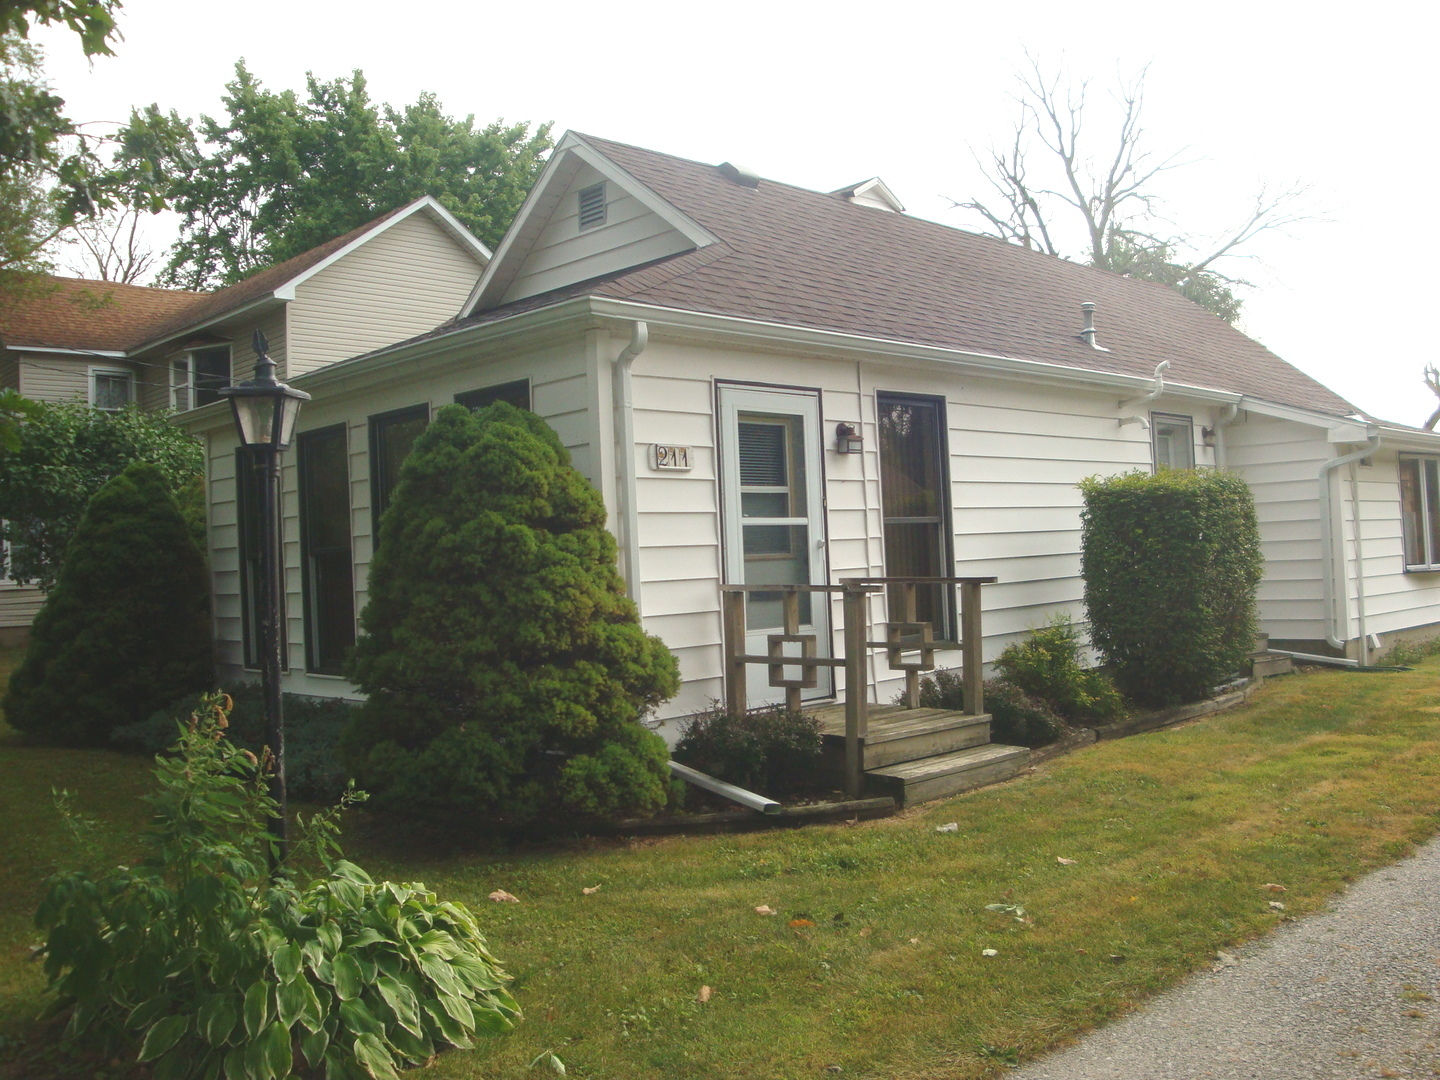 211 Grove ,Rankin, Illinois 60960